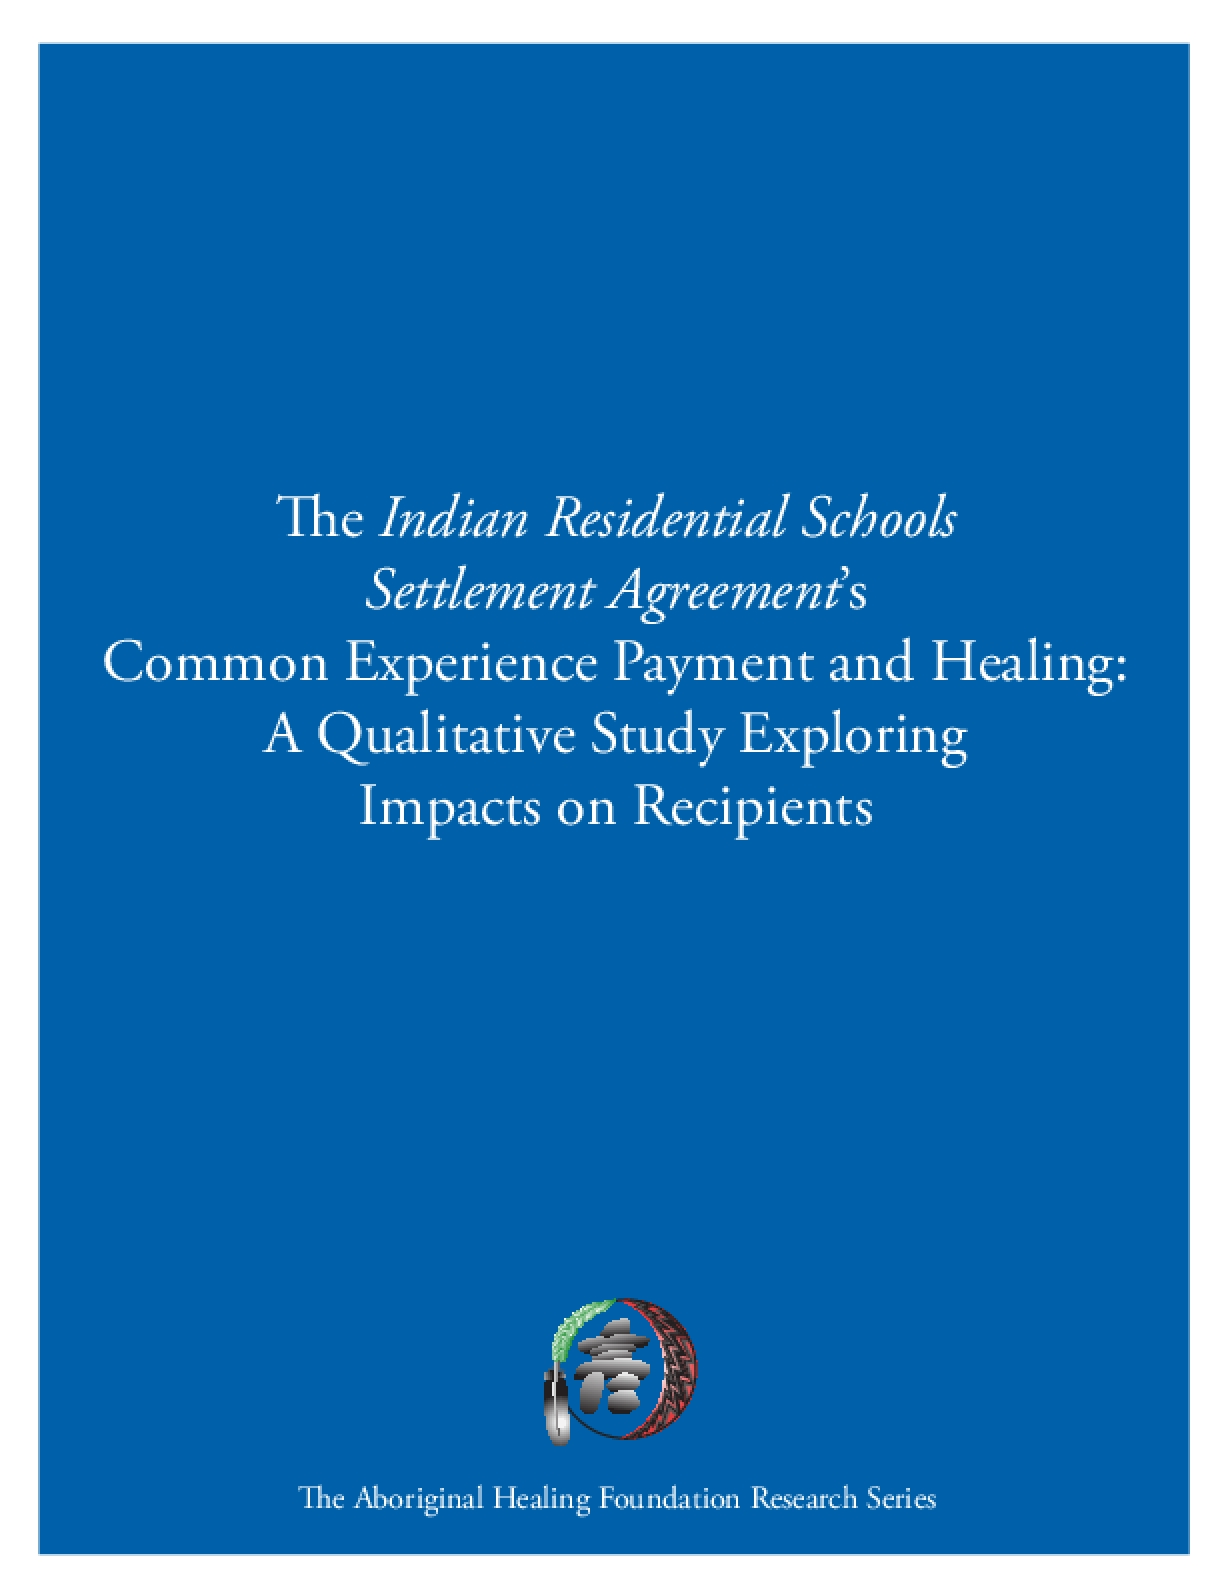 The Indian Residential Schools Settlement Agreement's Common Experience Payment and Healing: A Qualitative Study Exploring Impacts on Recipients